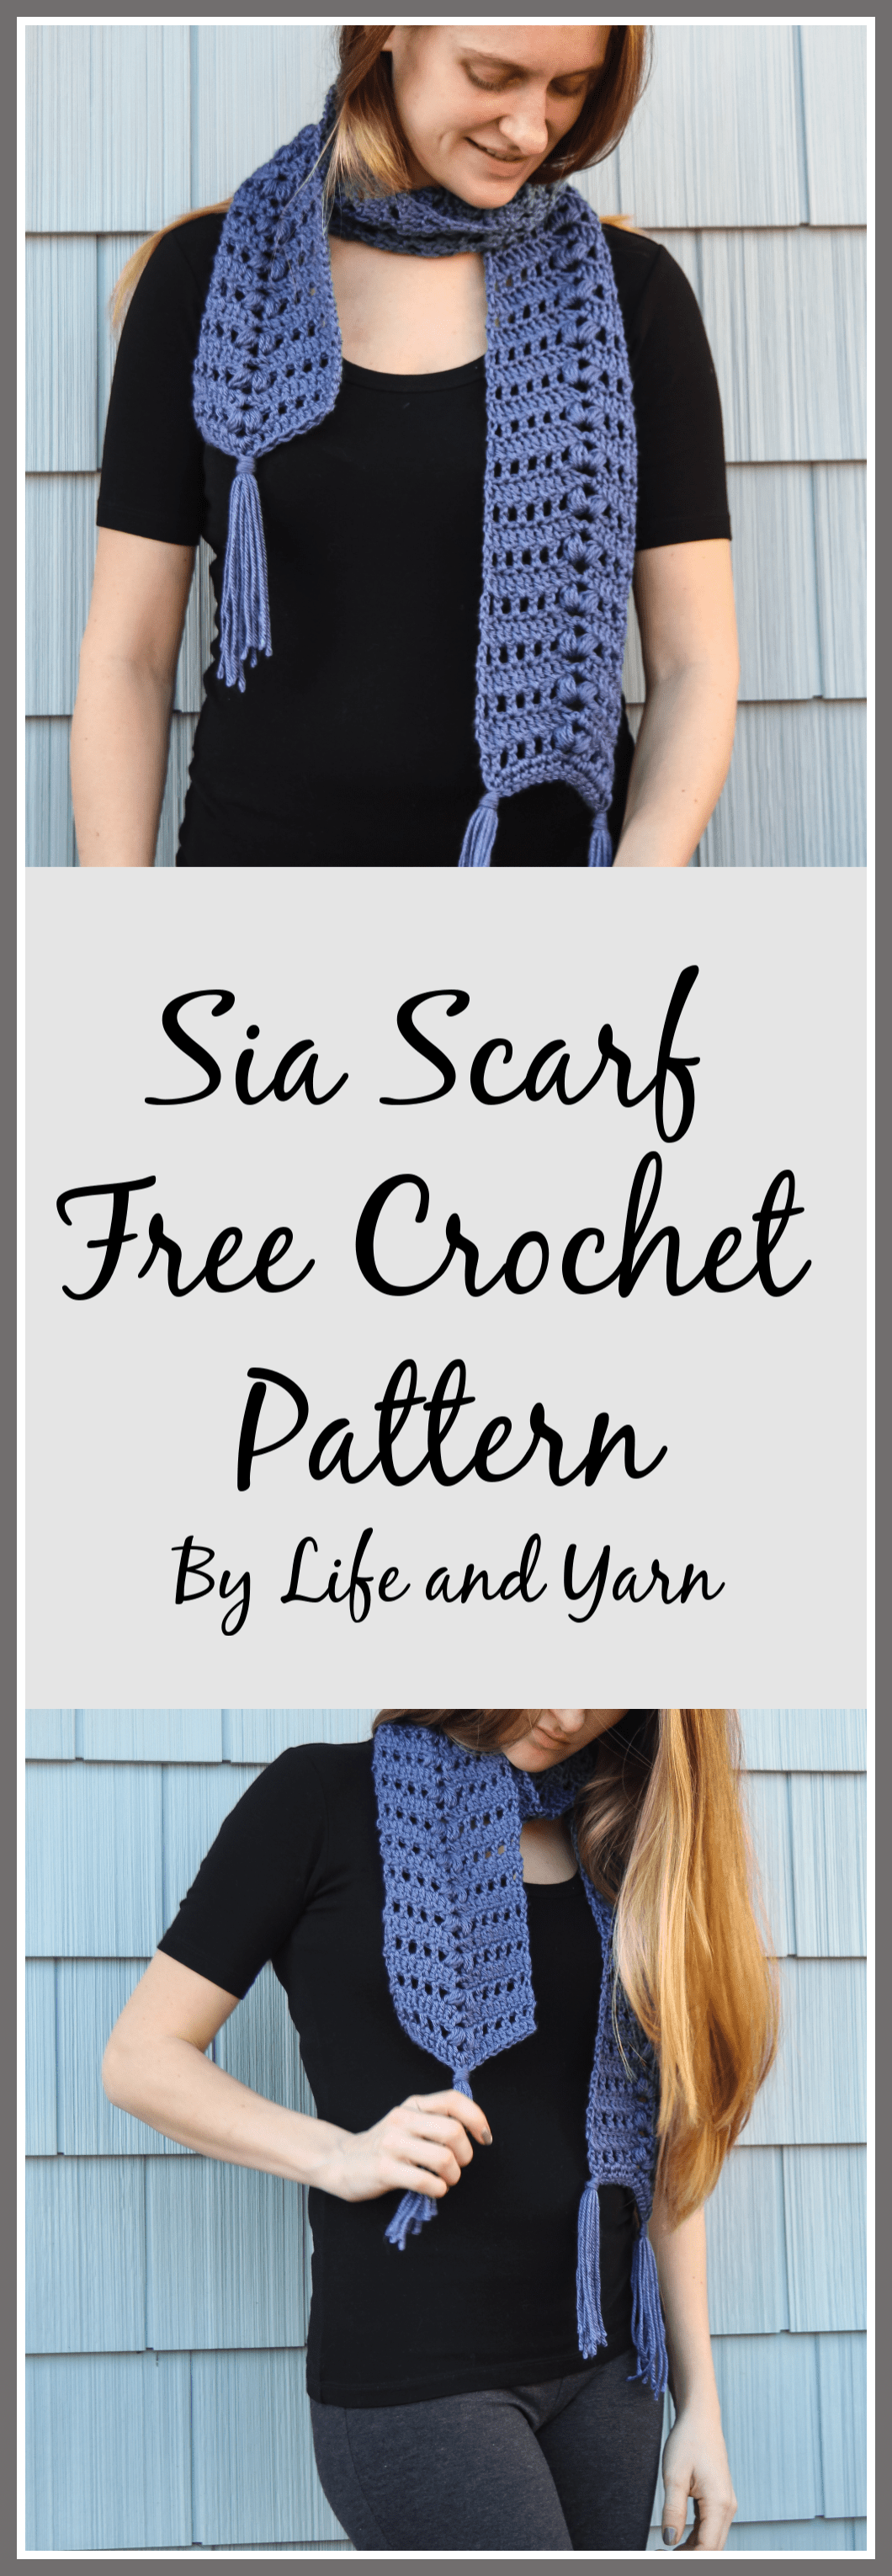 Sia Scarf Free Crochet Pattern - Life and Yarn Easy Crochet Pattern